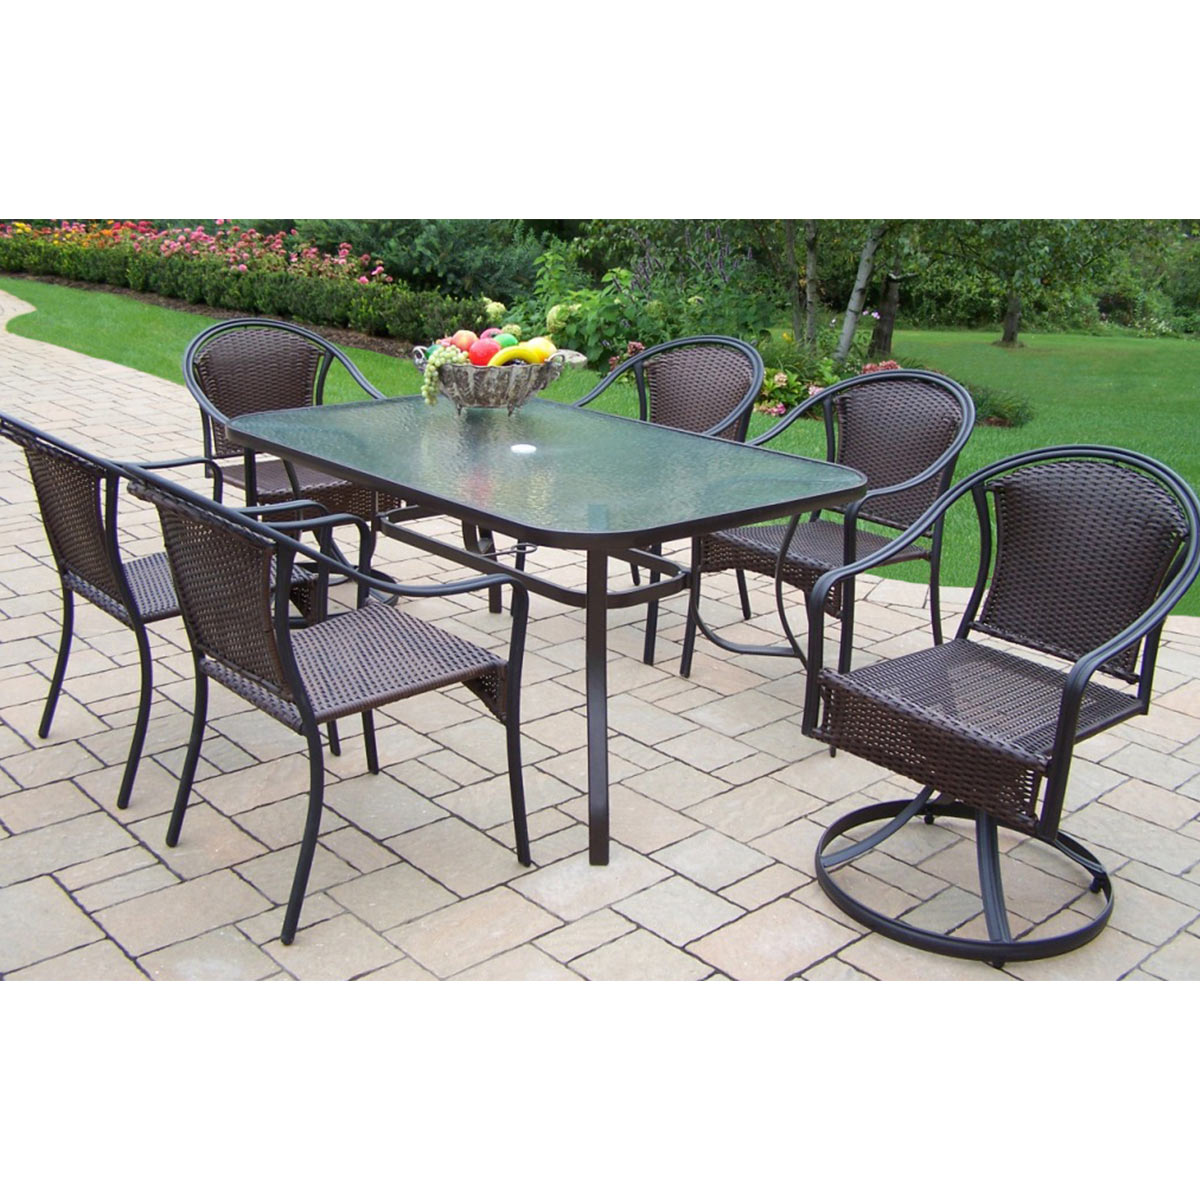 Oakland Living Tuscany 7 Piece Dining Set with 60 x 36  : oakland living tuscany 7 piece dining set with 60 x 36 tempered glass top table 2 swivel chairs and 4 stackable chairs in black 3 from www.simplypatiofurniture.com size 1200 x 1200 jpeg 234kB